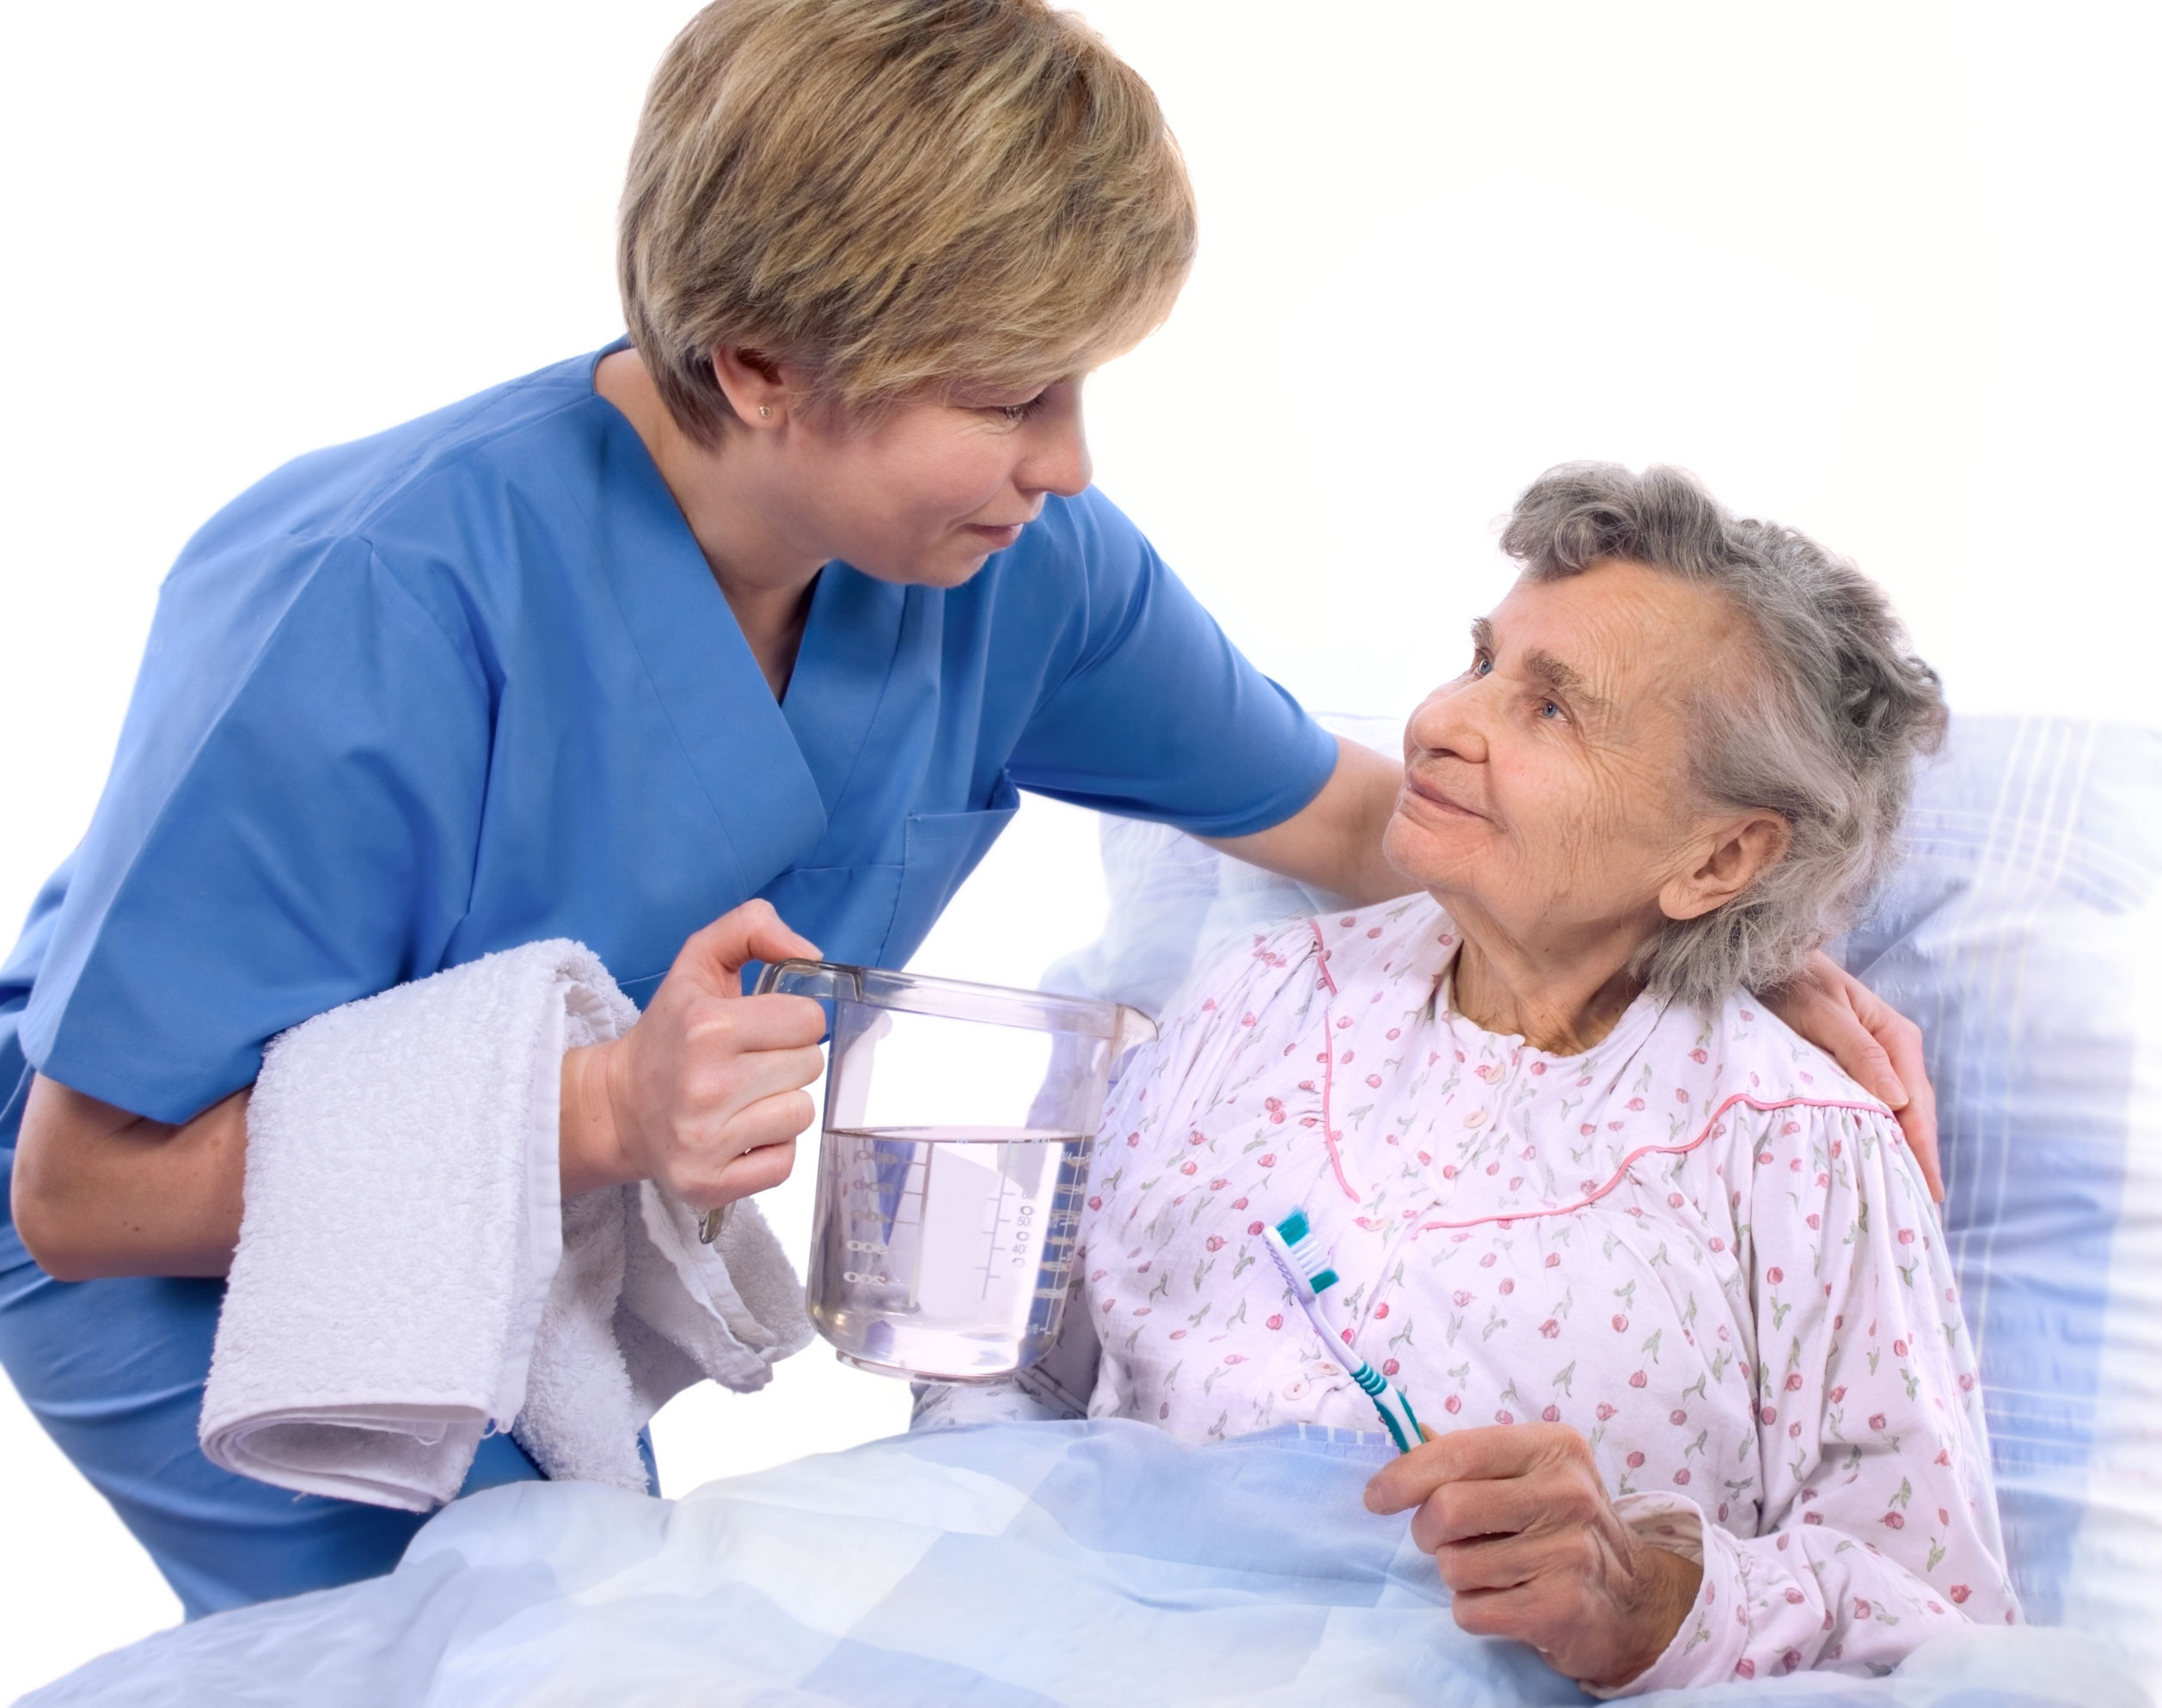 the roles of nurses in elderly care On the front lines of care, nurses play a unique role in caring for both patients and revealed that although most elderly patients prefer only comfort measures.